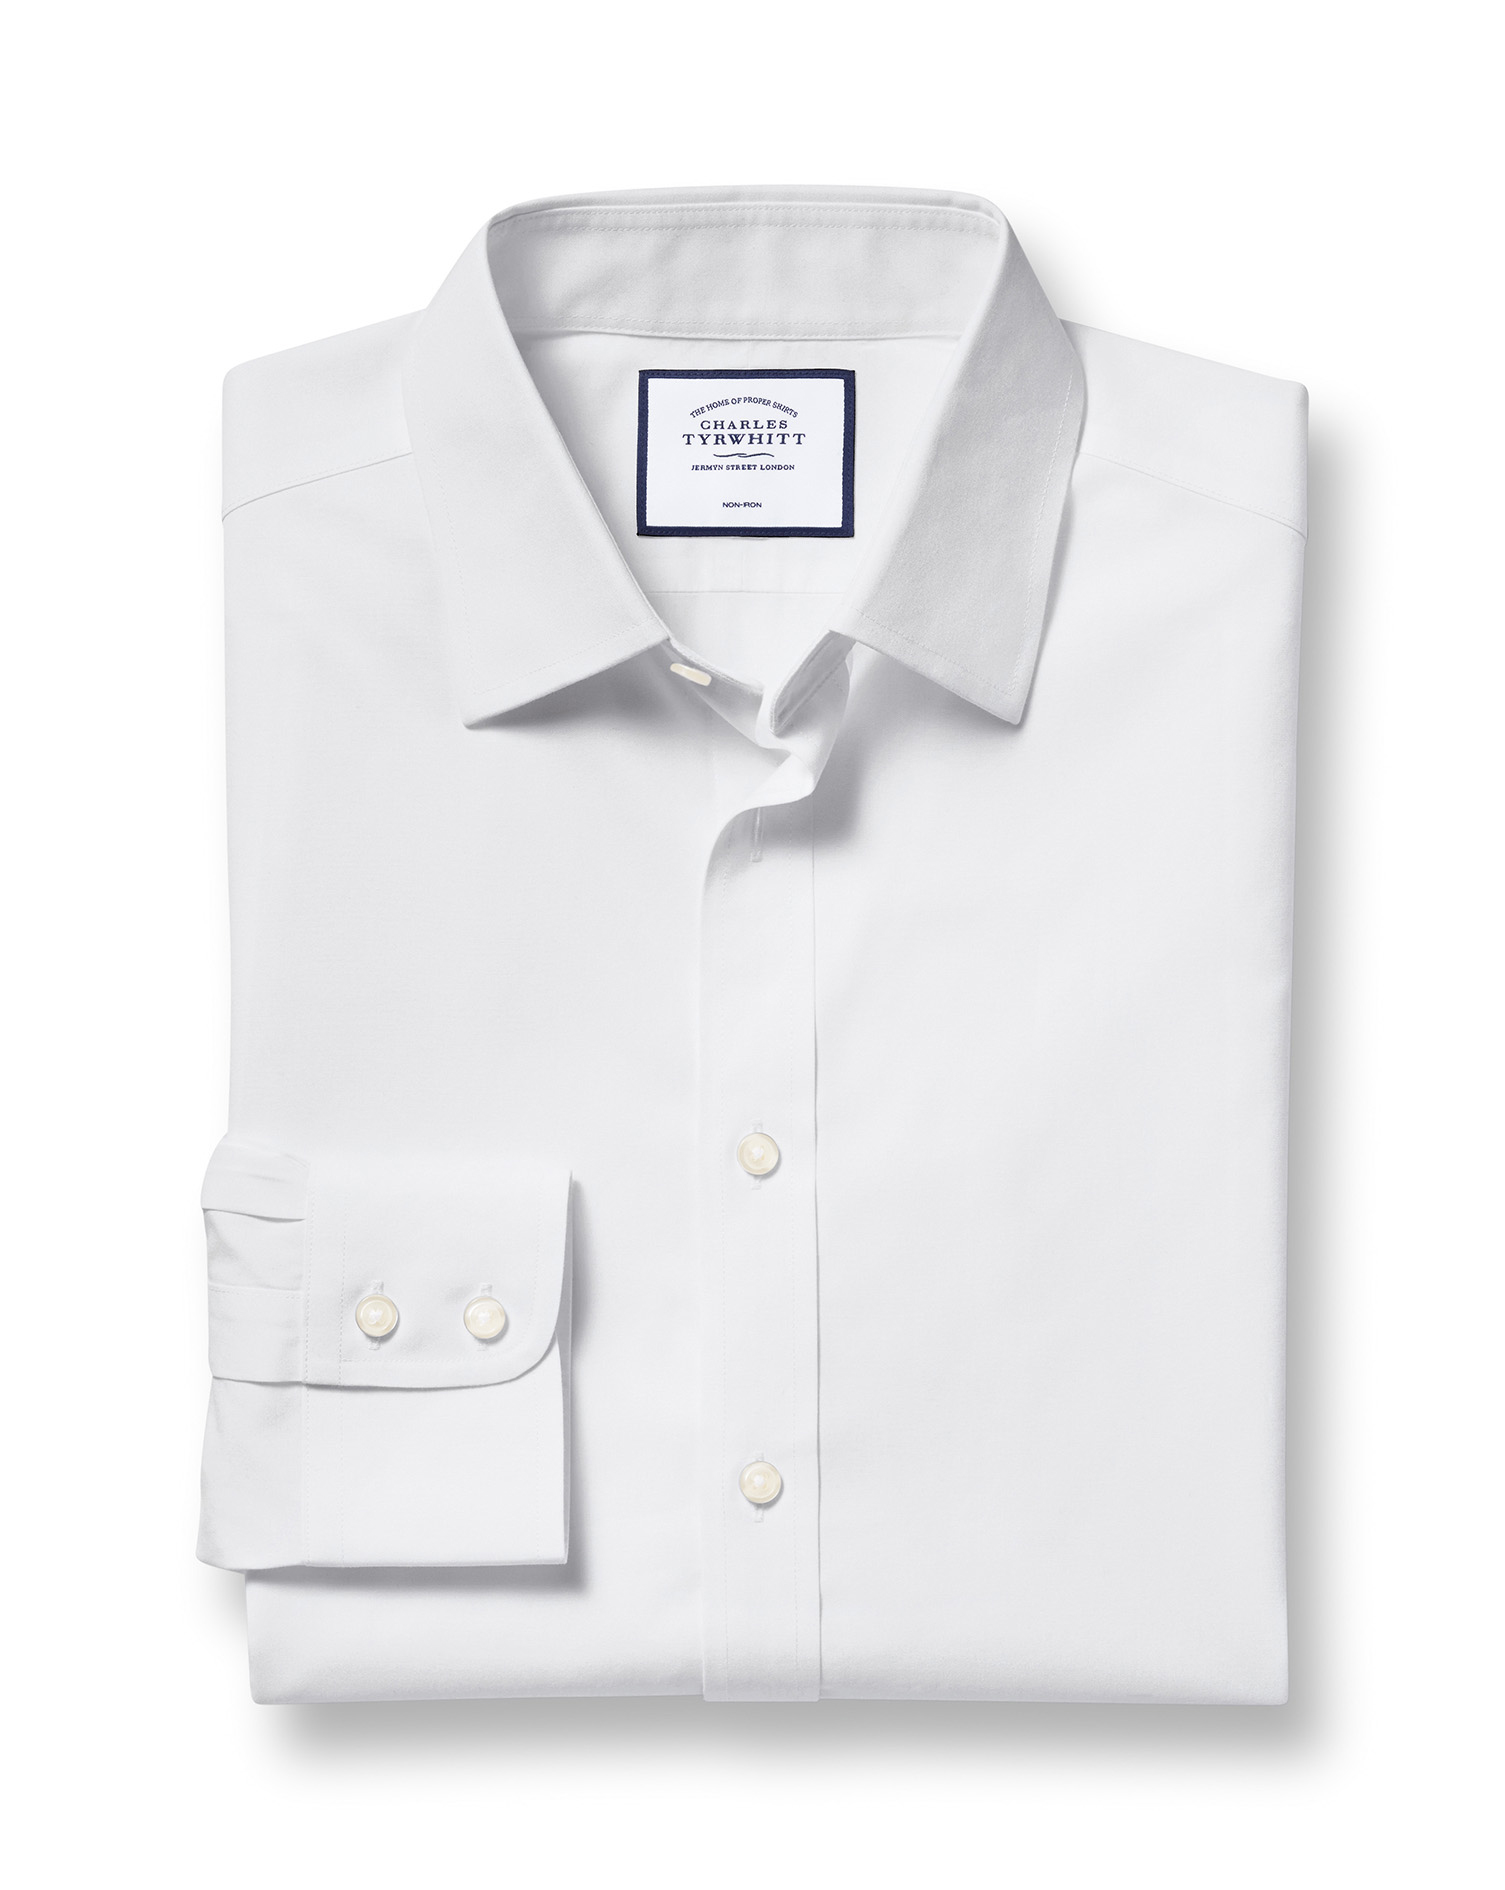 Extra Slim Fit Non-Iron Poplin White Cotton Formal Shirt Single Cuff Size 15/34 by Charles Tyrwhitt